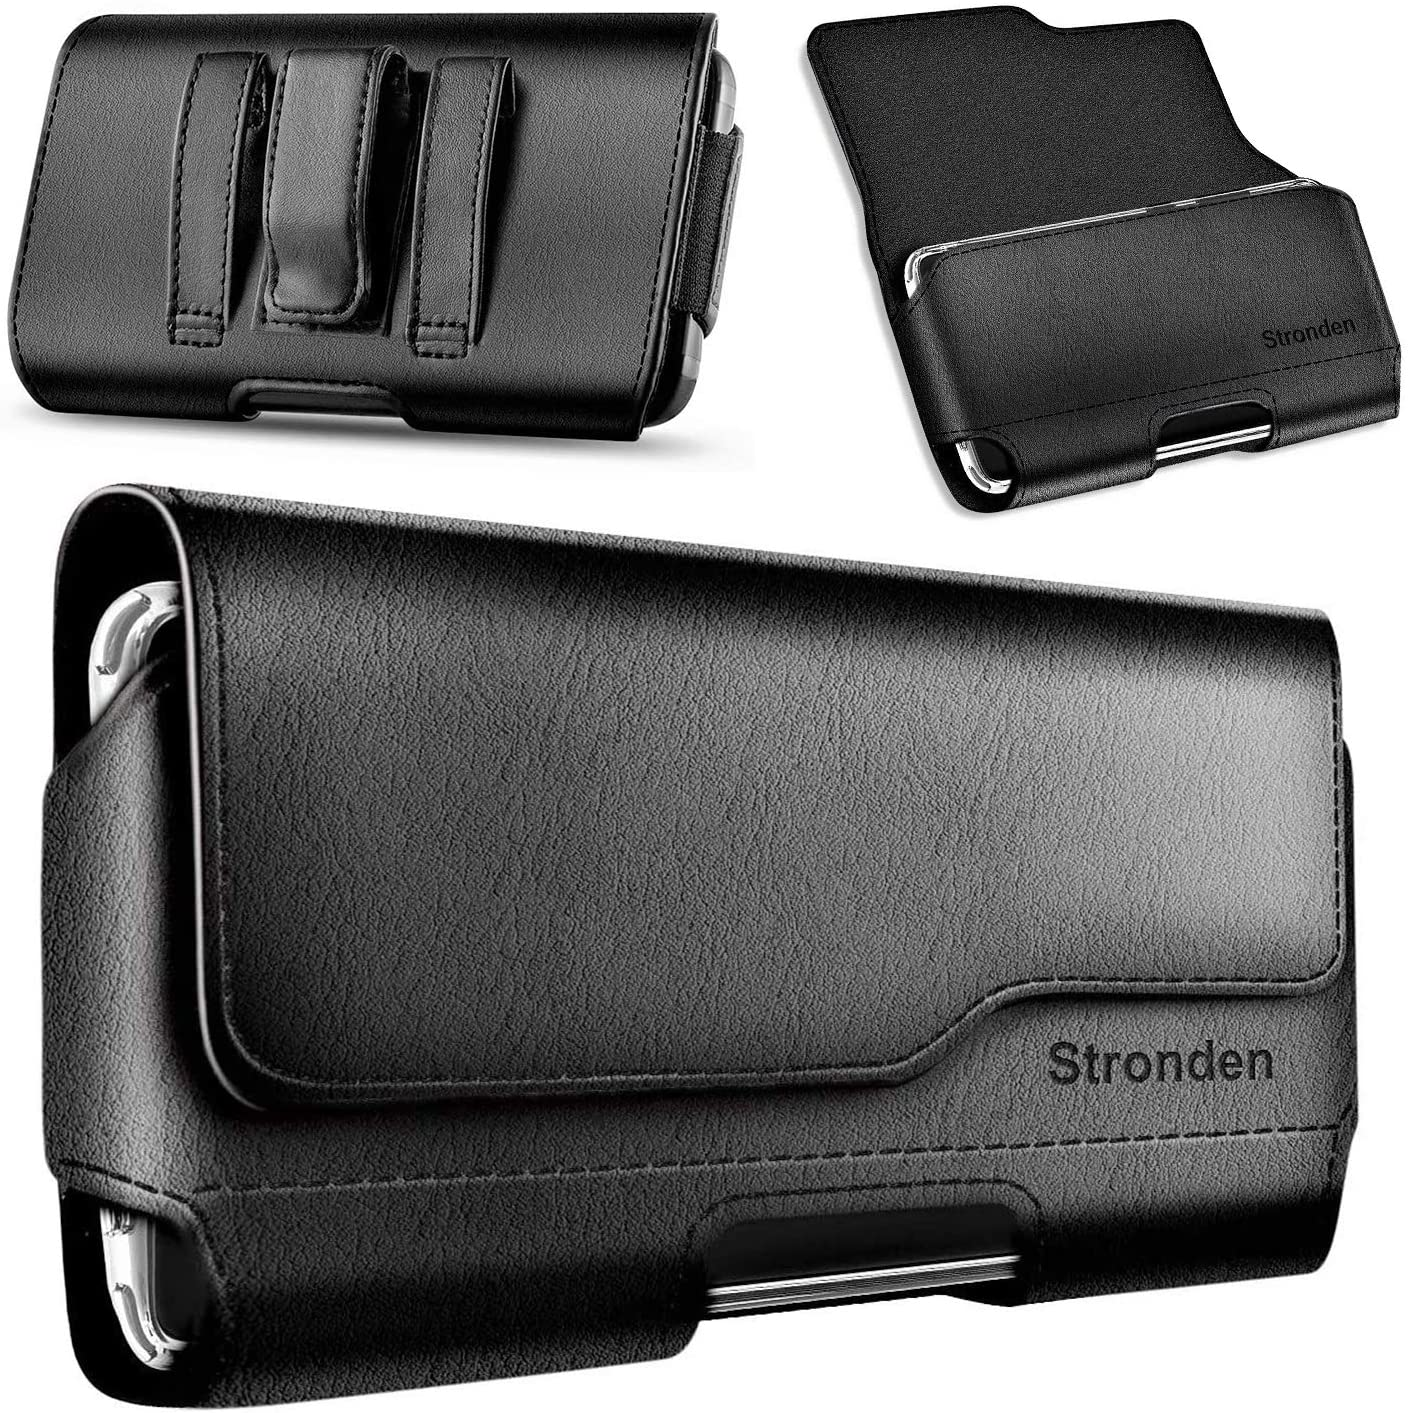 Stronden Holster for iPhone SE (2020), iPhone 8, 7, 6S Belt Case with Clip, Apple iPhone 8 Leather Belt Clip Case Holster Pouch Phone Holder (Fits Otterbox Commuter/Symmetry Case)